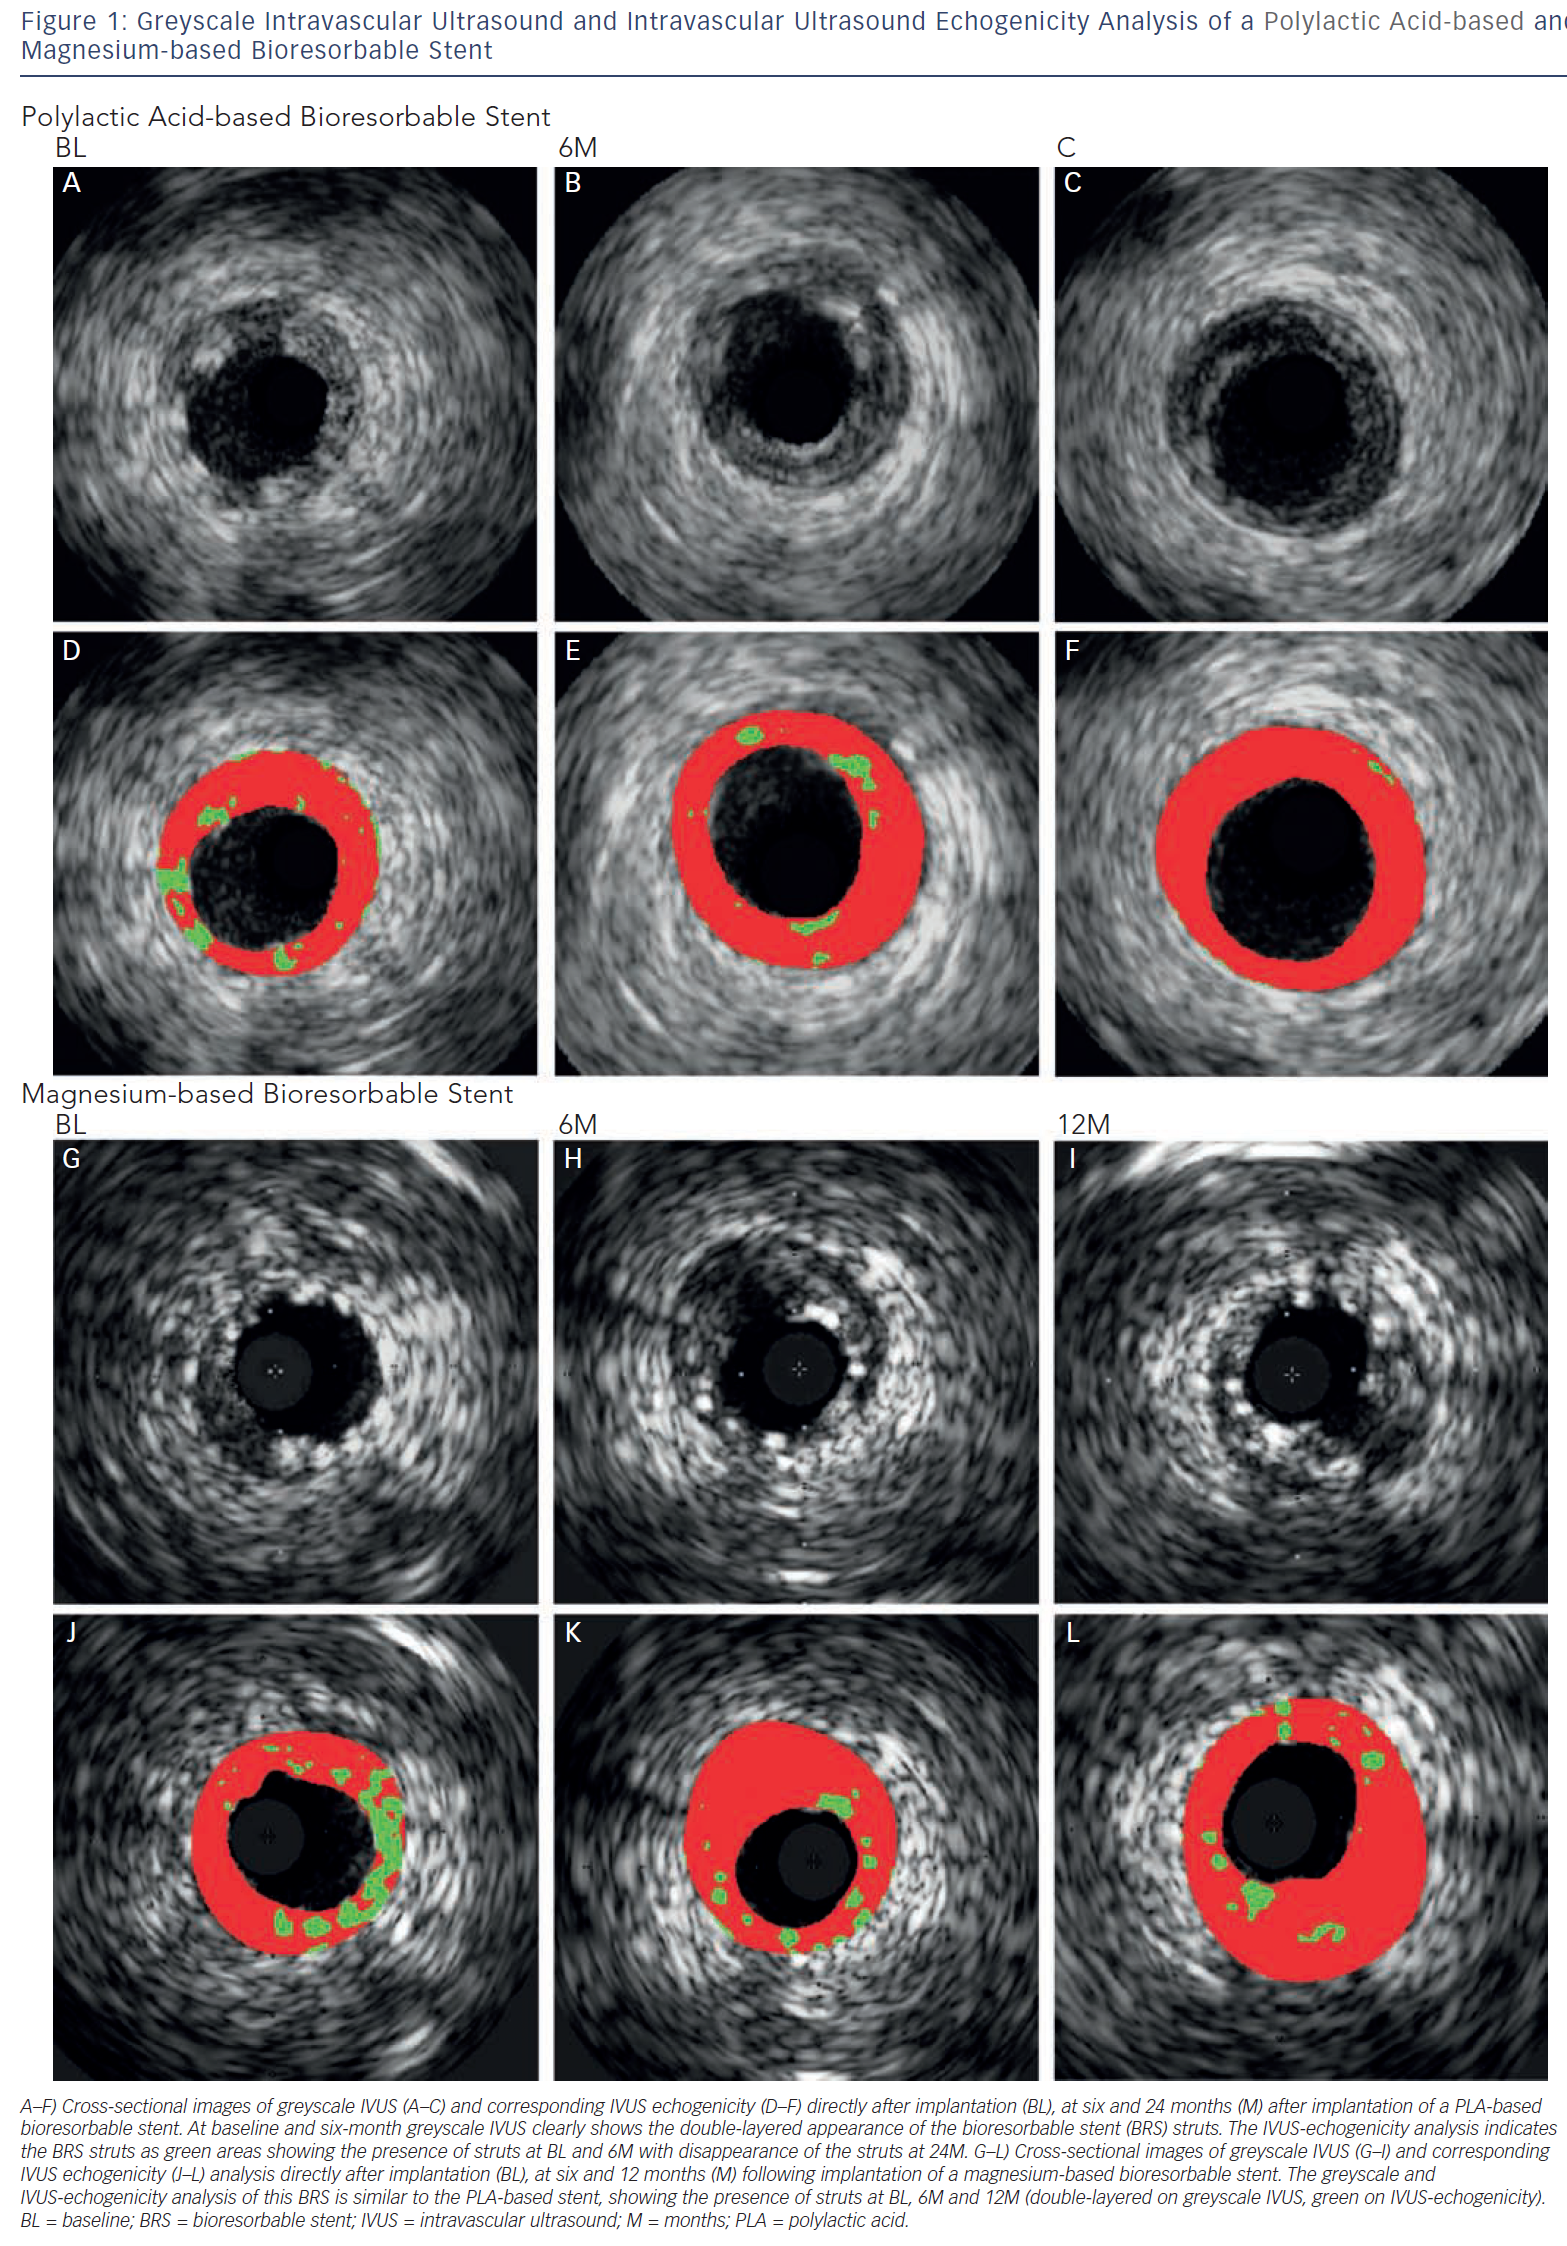 Greyscale Intravascular Ultrasound And Intravascular Ultrasound Echogenicity